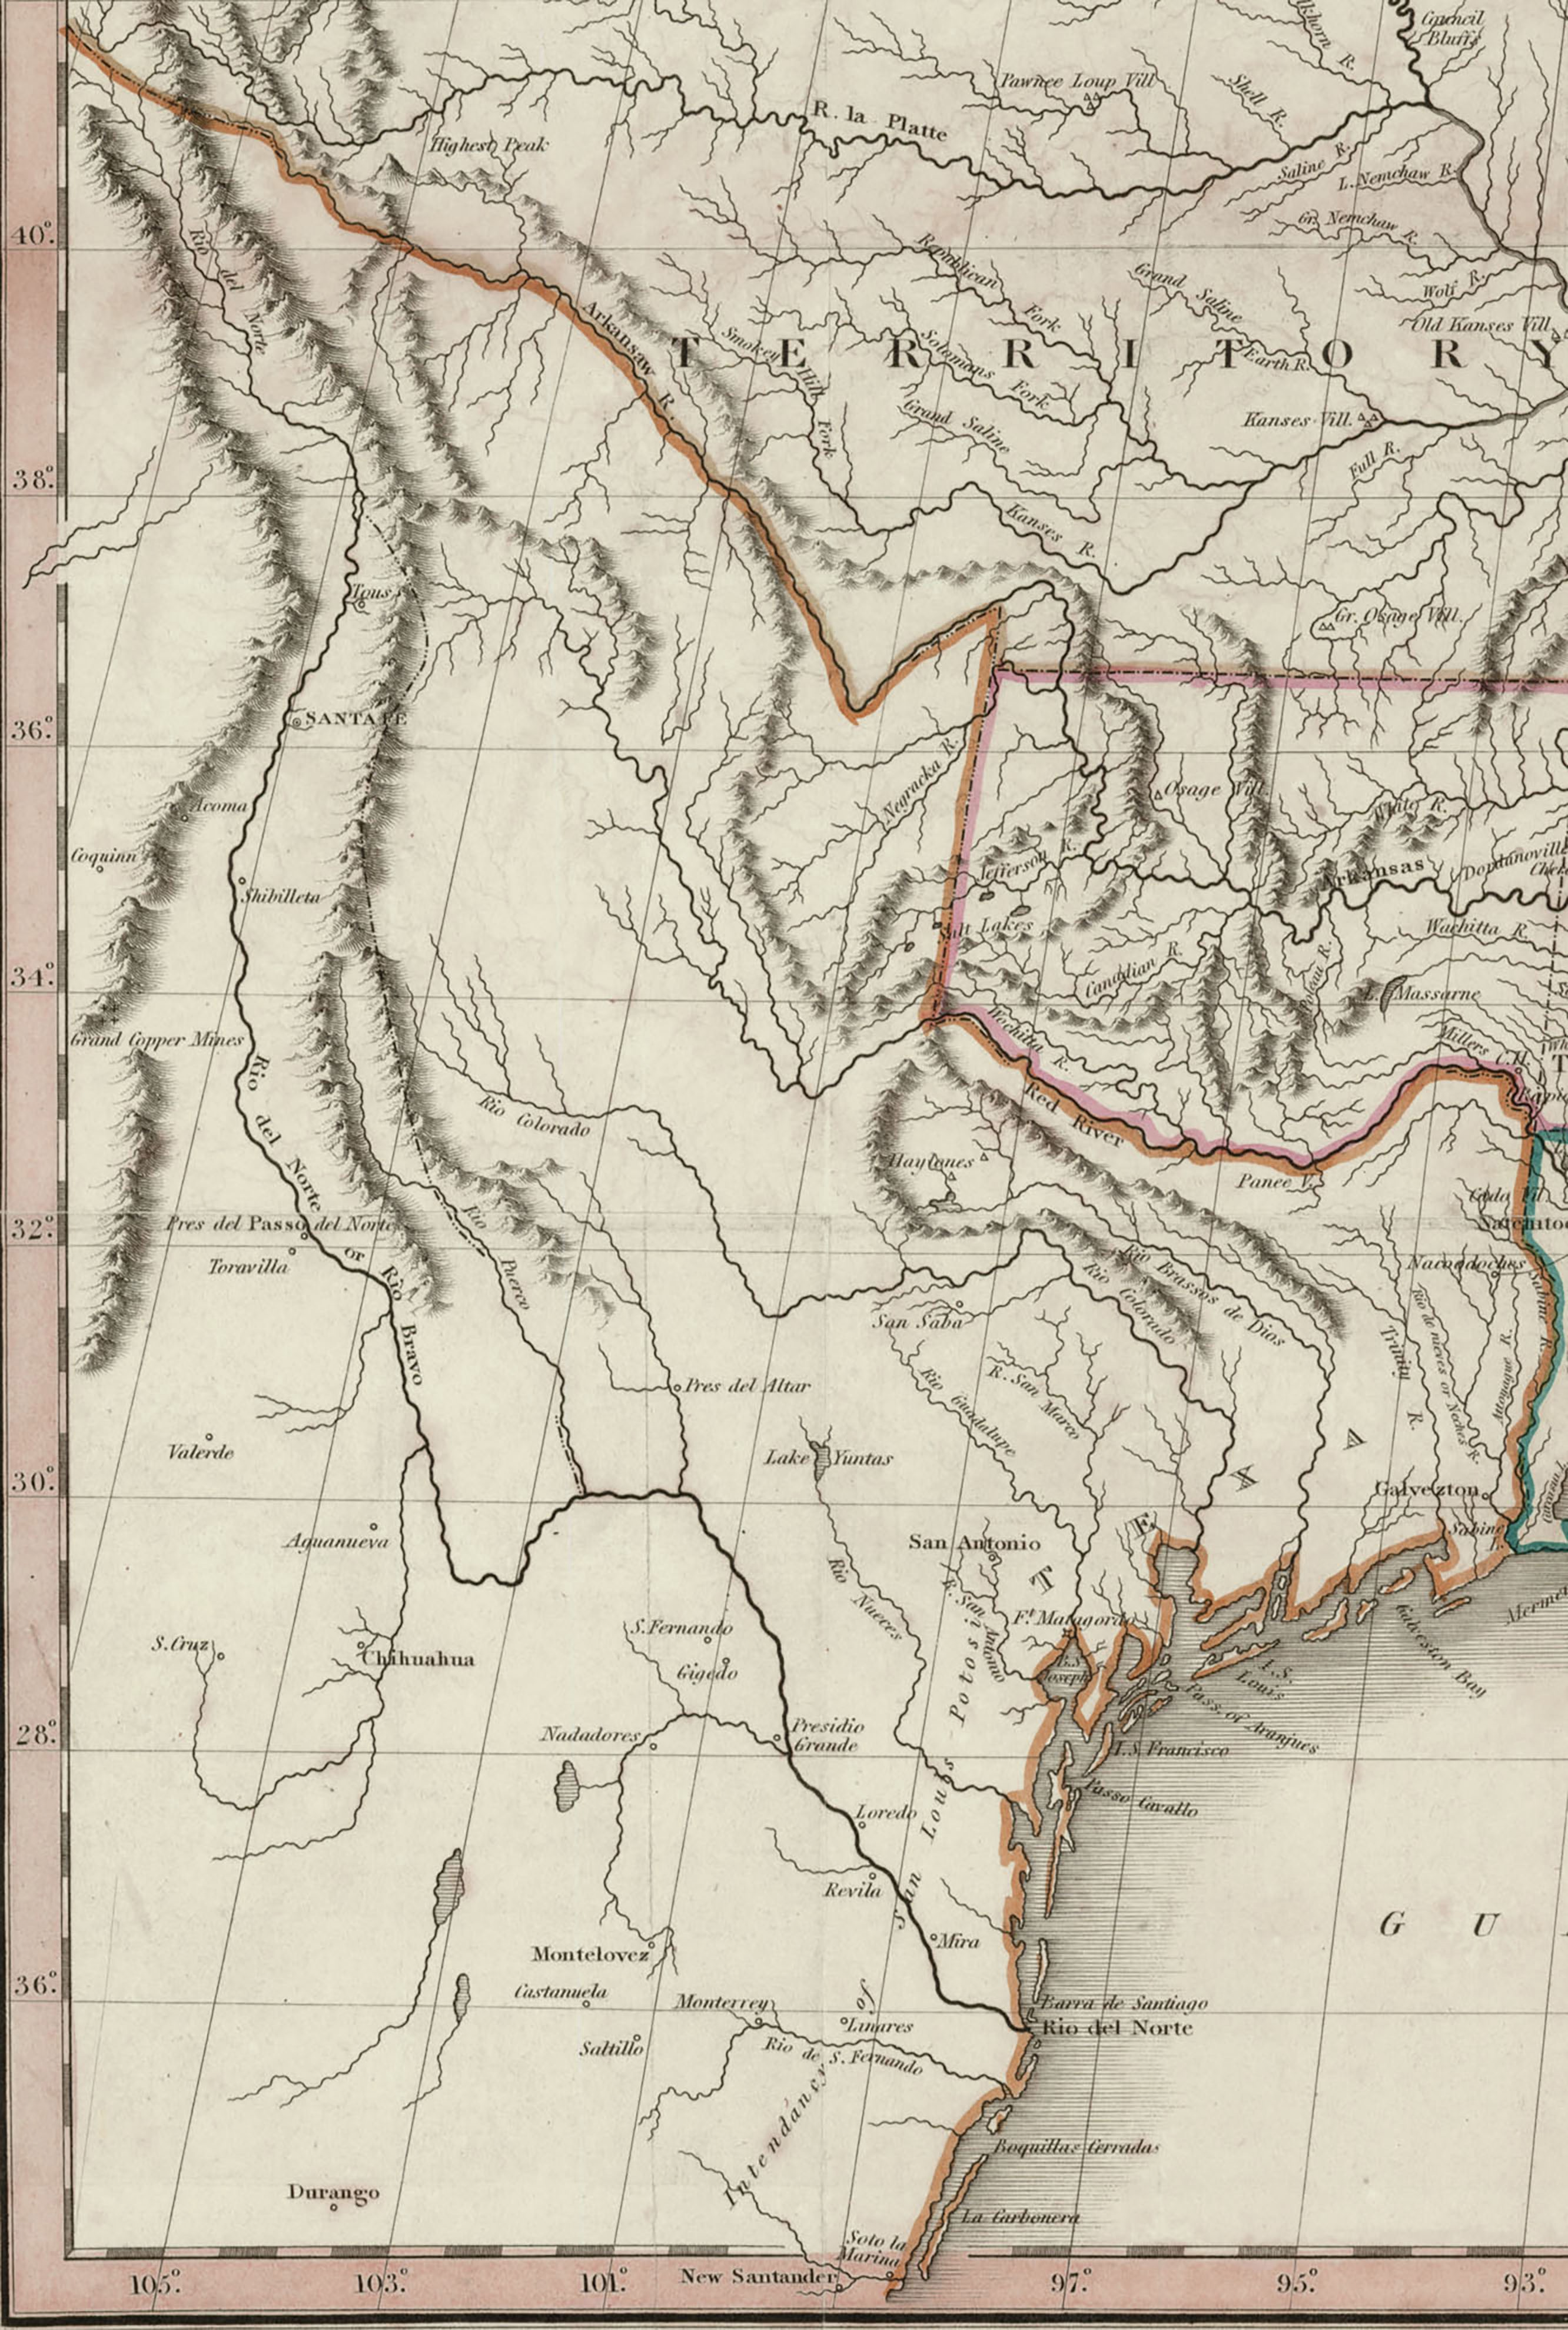 United States of America Compiled from the Latest and Best ... on republic of texas border map, arkansas river map, republic of texas overlay map, republic of texas cities and rivers map, early republic of texas map, republic of texas texas map, original 13 colonies map, saltillo mexico map, modern republic of texas map, mexican republic map, independent republic of south carolina, northern district of texas map, 1841 republic of texas map, city of cleveland texas map, lone star republic map, republic of texas battles map, independent mexico map, 1840 republic of texas map, republic tx map, independent republic of california map,